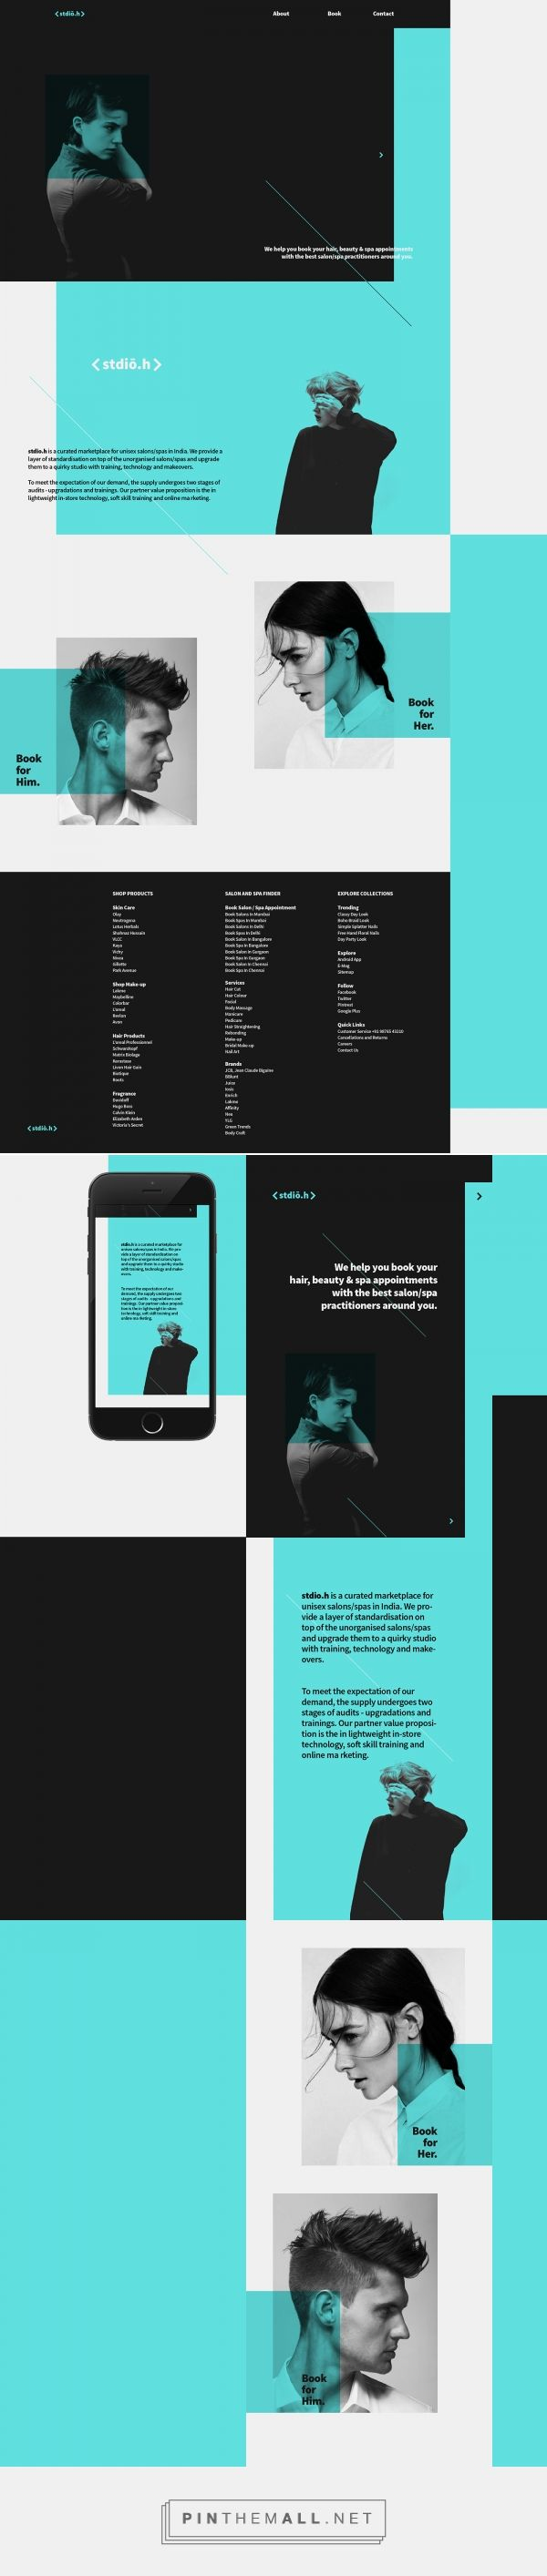 stdioh salon web design by utkarsh raut